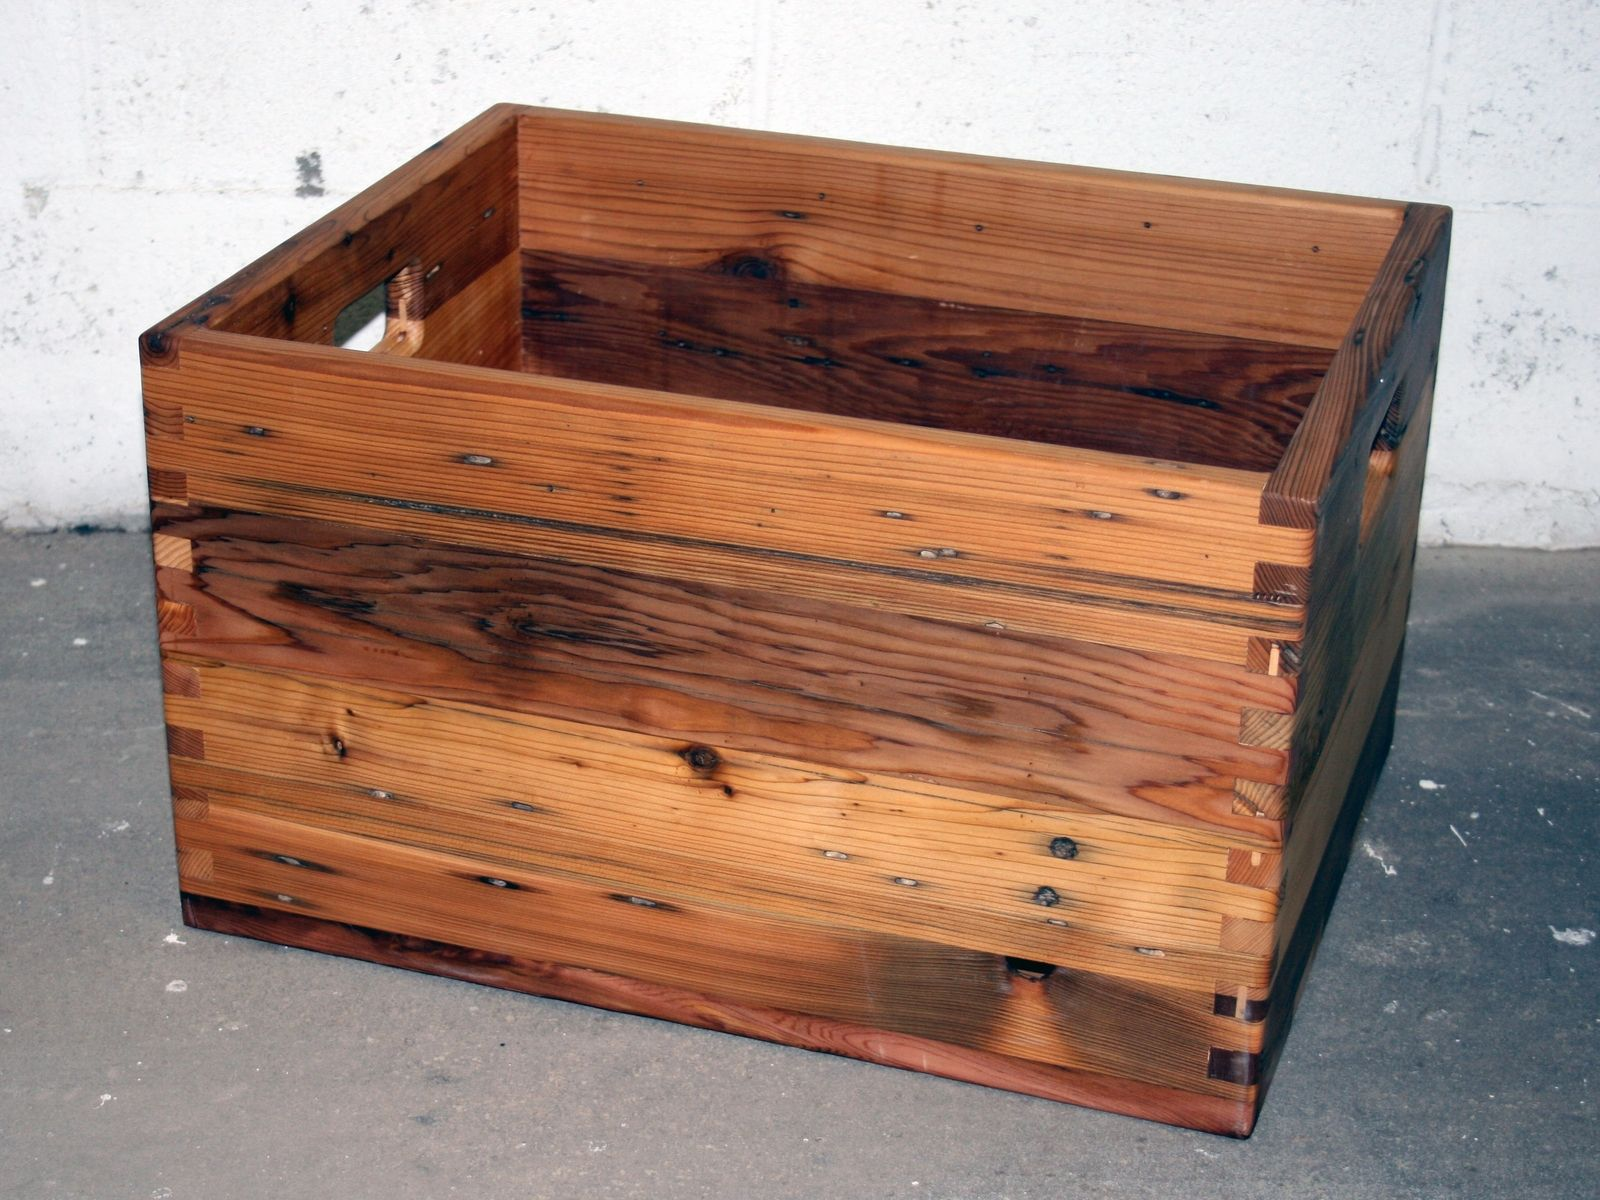 Hand made reclaimed cedar box joint bench coffee table by - Custom Made Reclaimed Cedar Box Joint Crate